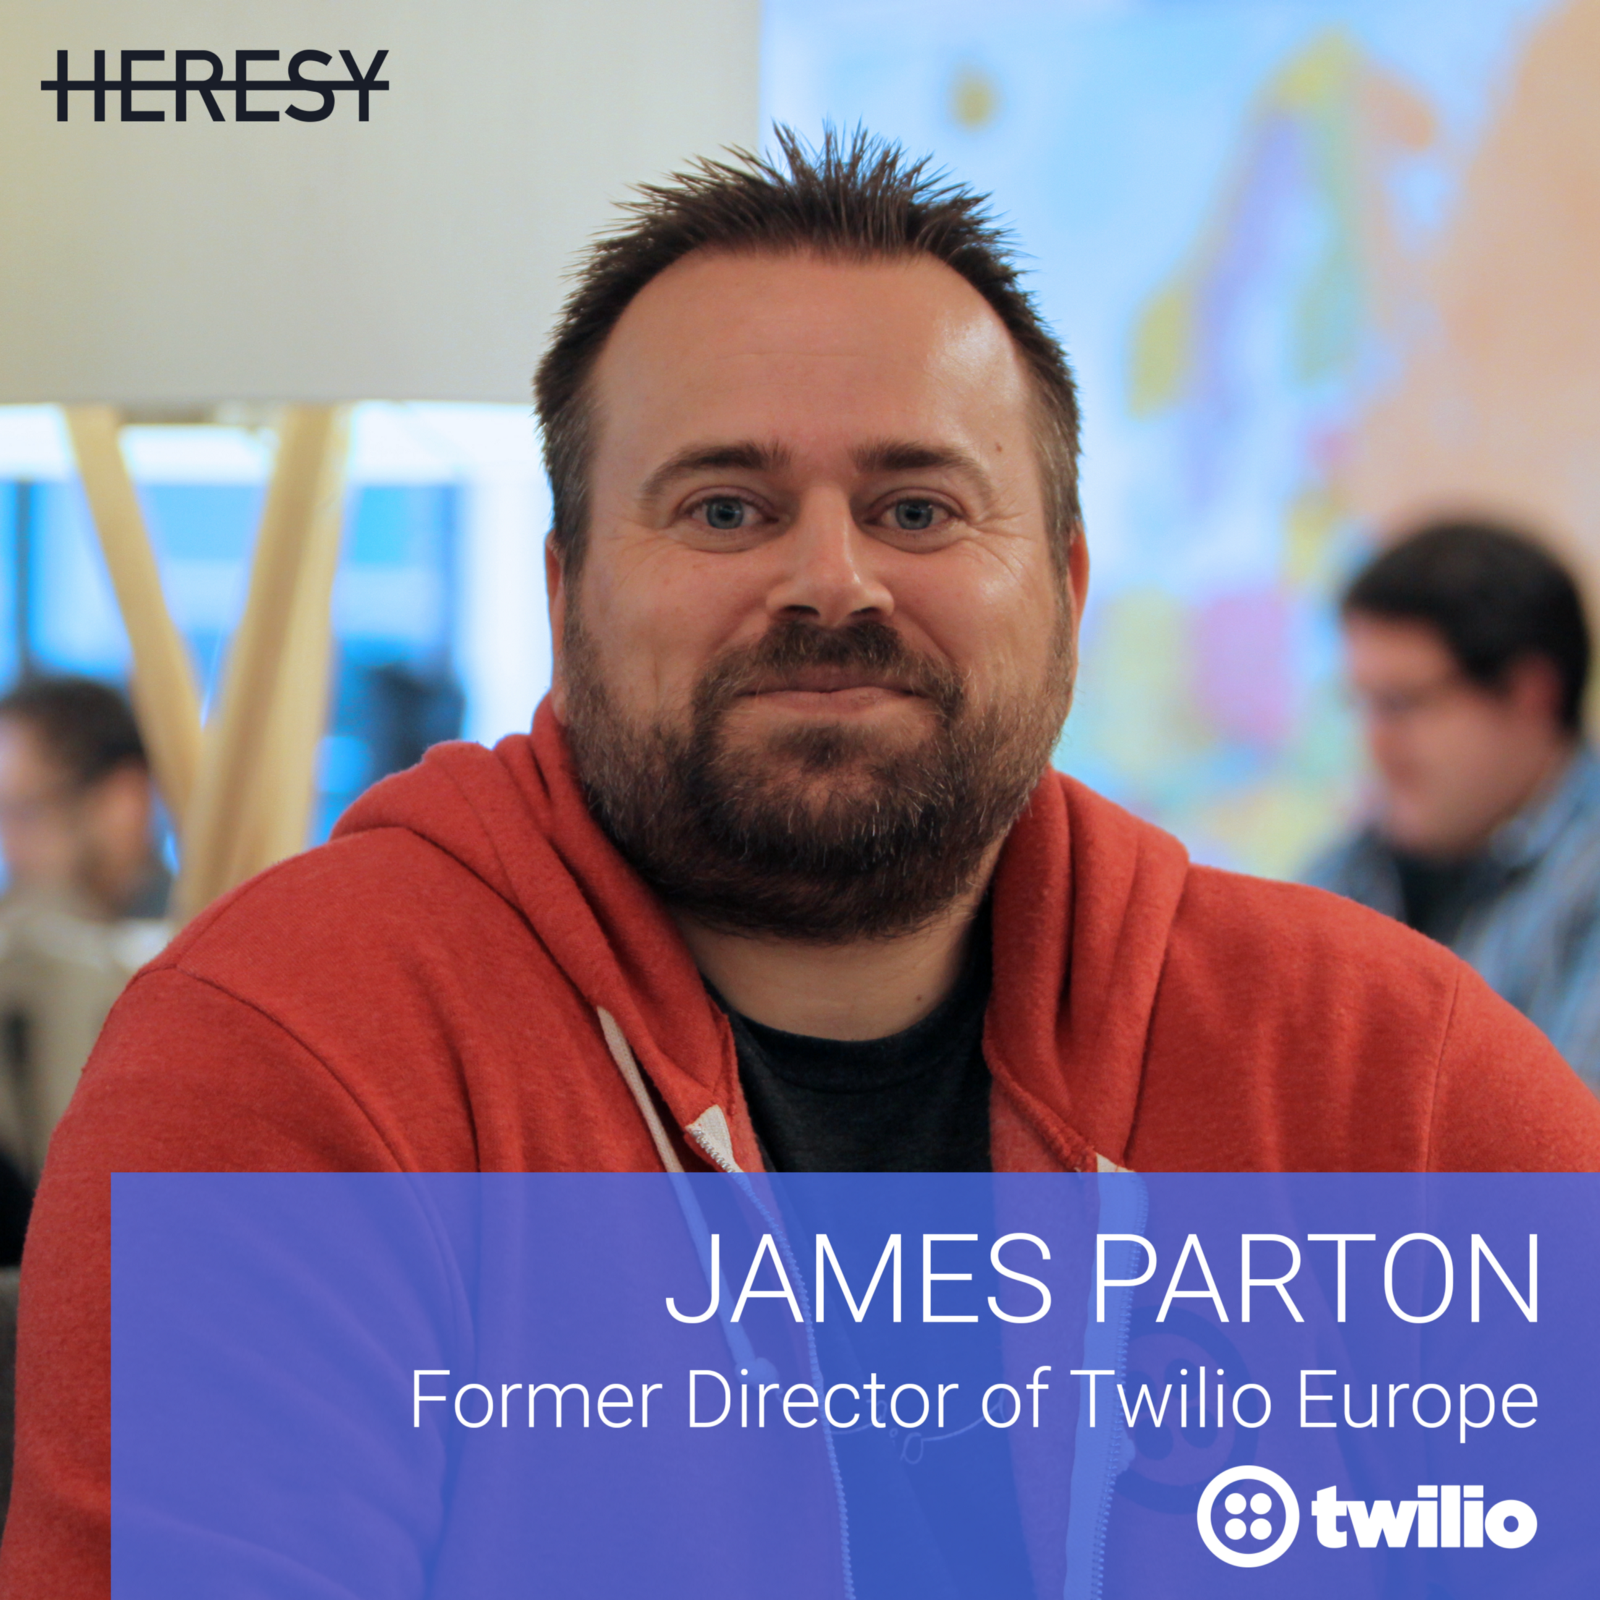 James parton twilio